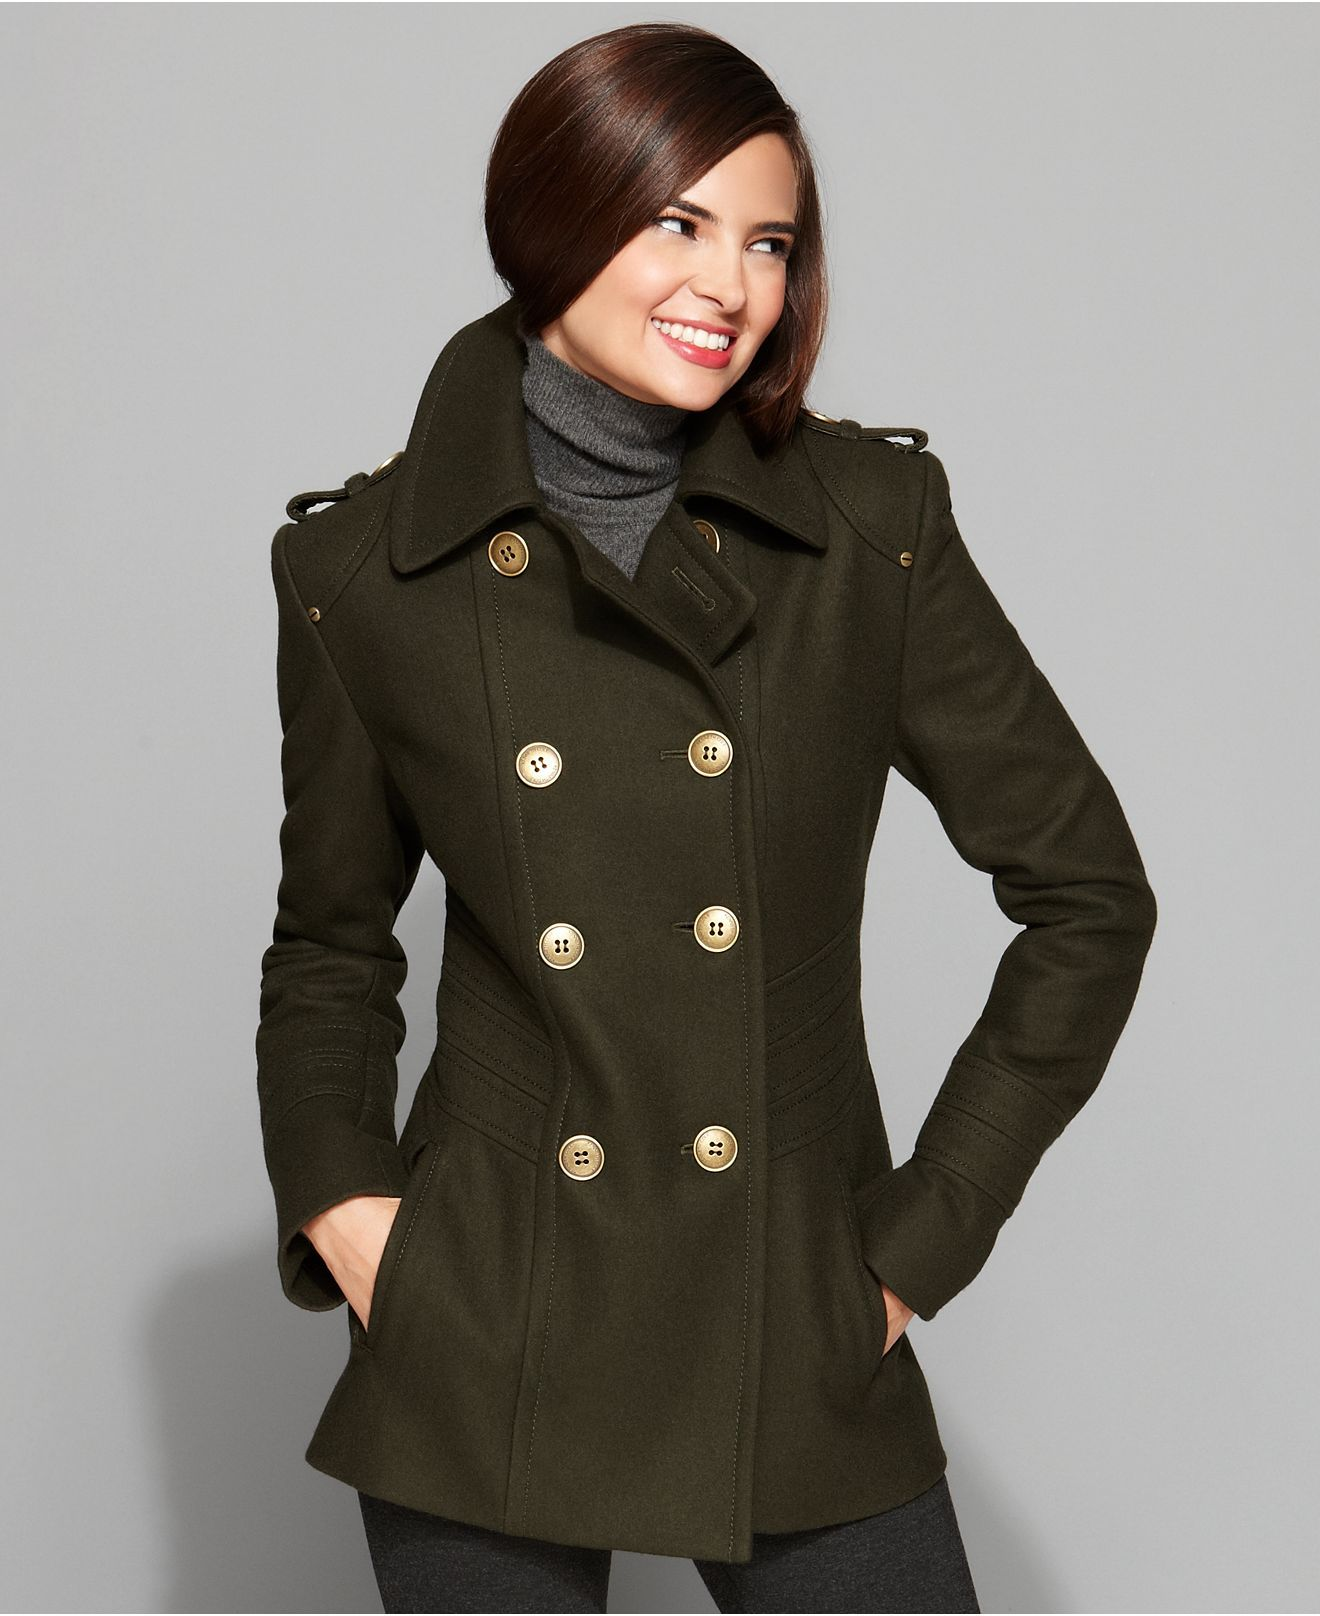 Cheap pea coat womens, Buy Quality coat fashion directly from China fashion coat Suppliers: TANGNEST Double Breasted Pea Coat Women Military Style Trench Fashion Woolen Blends Jacket Outwear Winter Coats WWN Enjoy Free Shipping Worldwide! Limited Time .